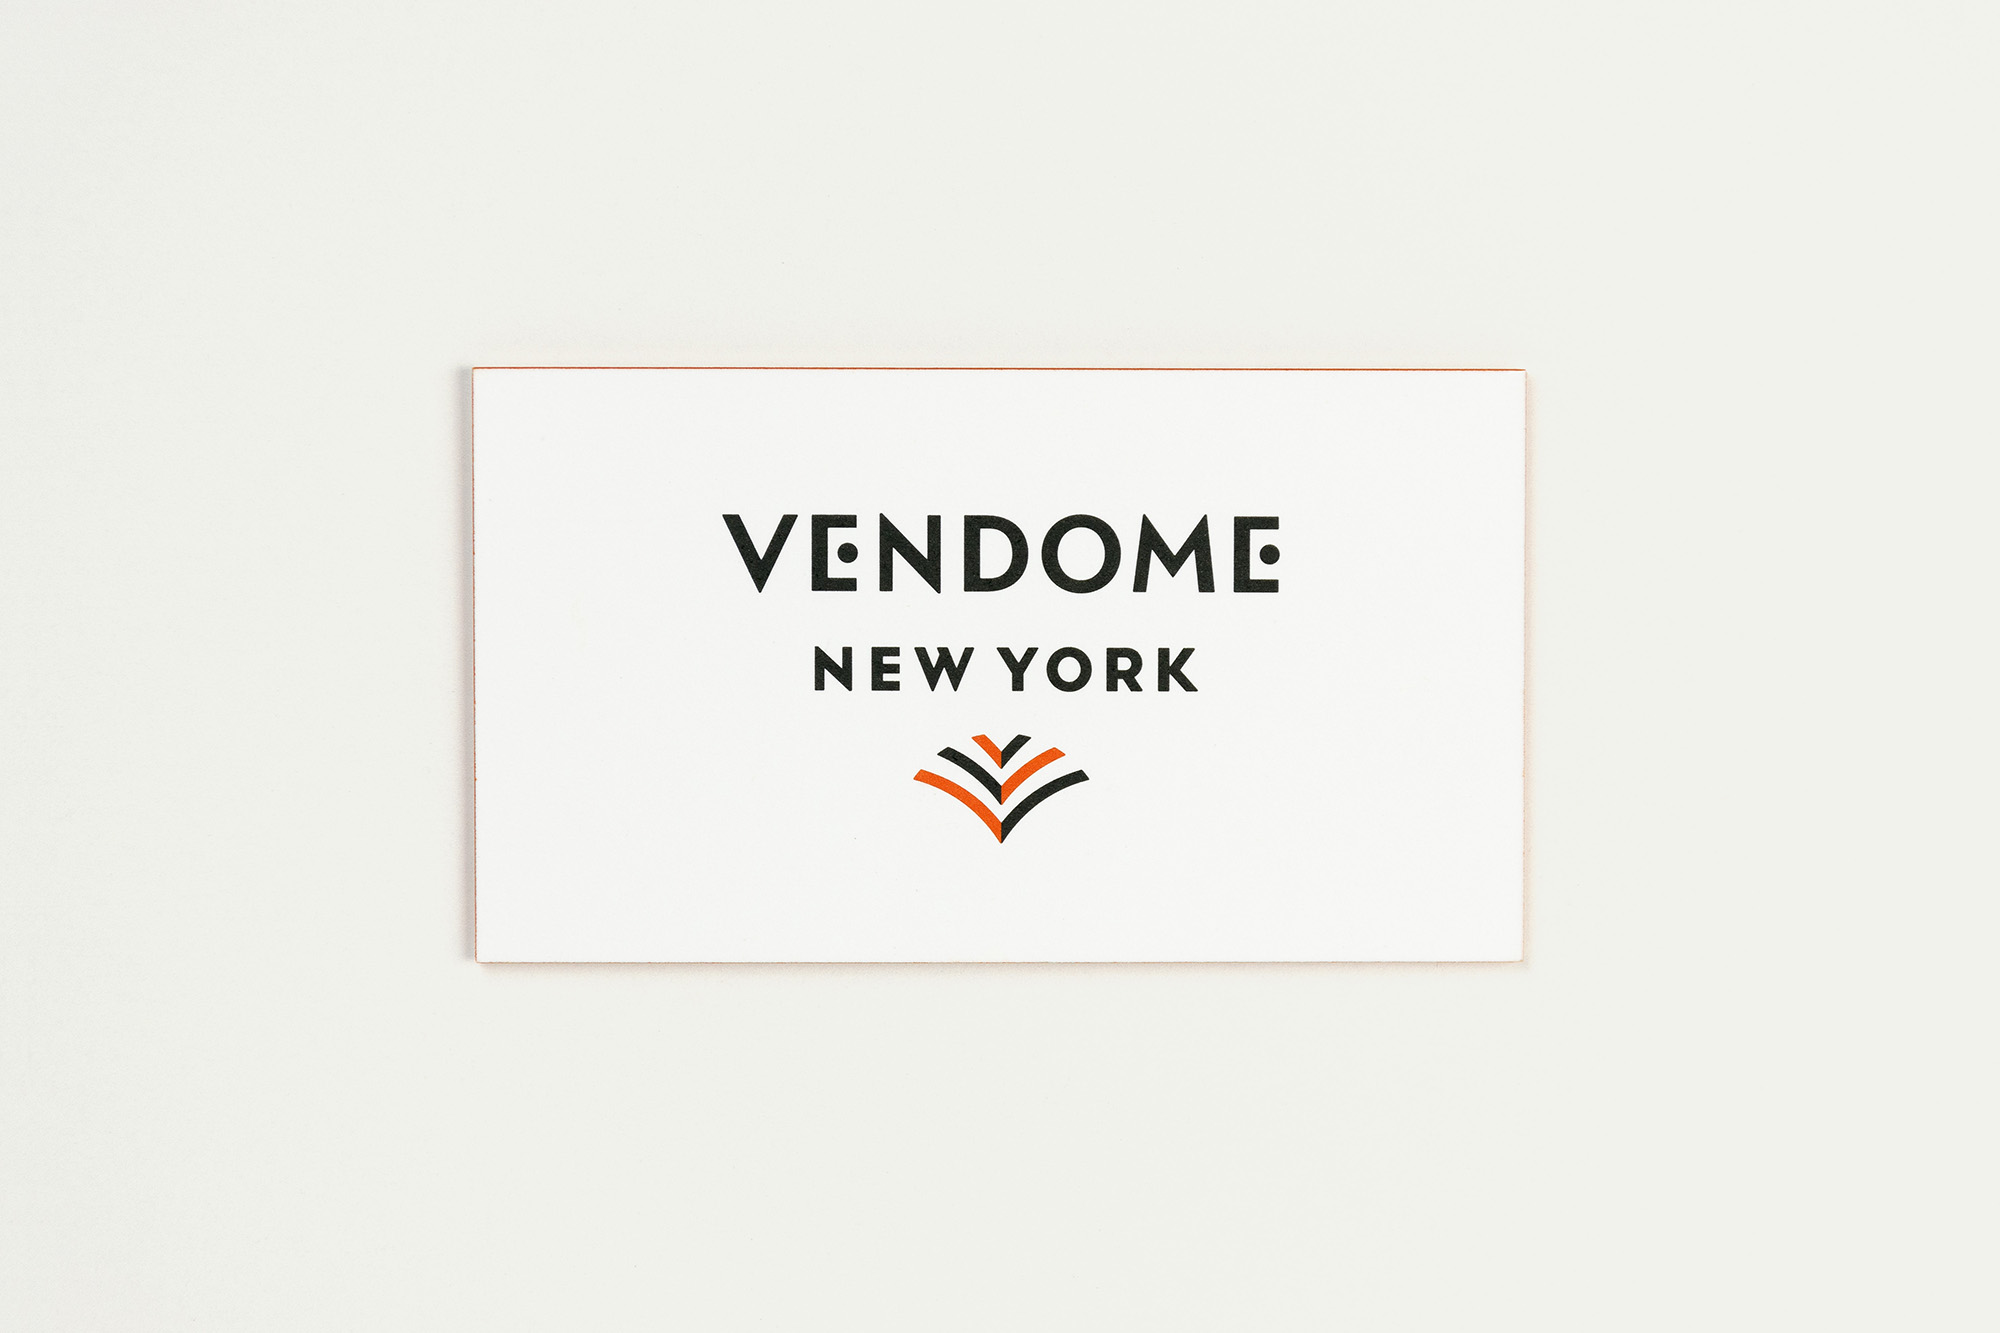 Vendome_card.jpg